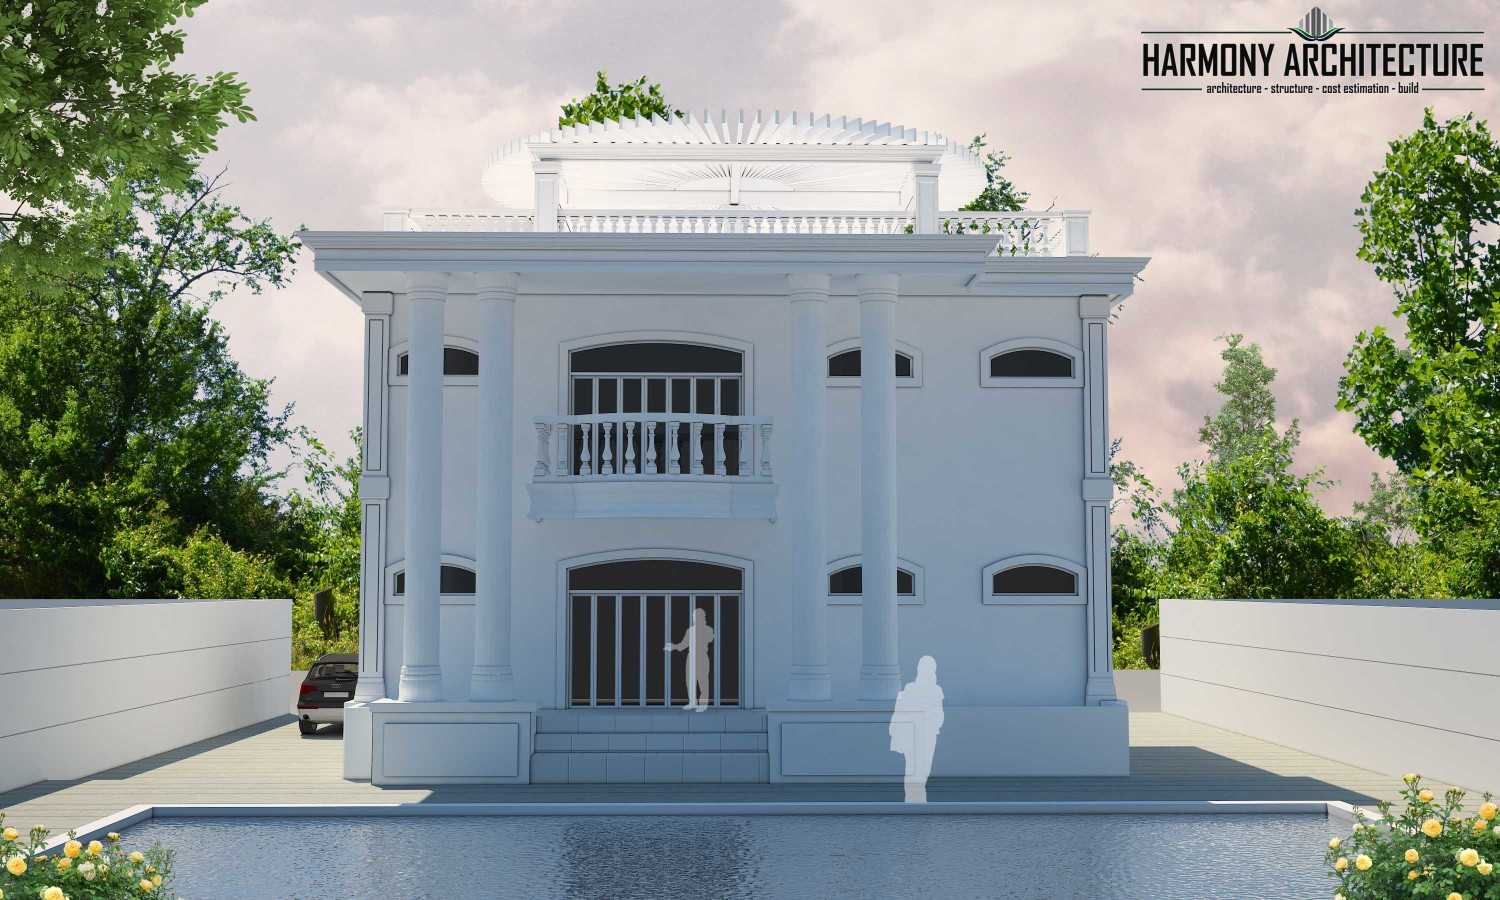 Harmony Architecture White House Of Timor Timor-Leste Timor-Leste Harmony-Architecture-White-House-Of-Timor Classic 52515